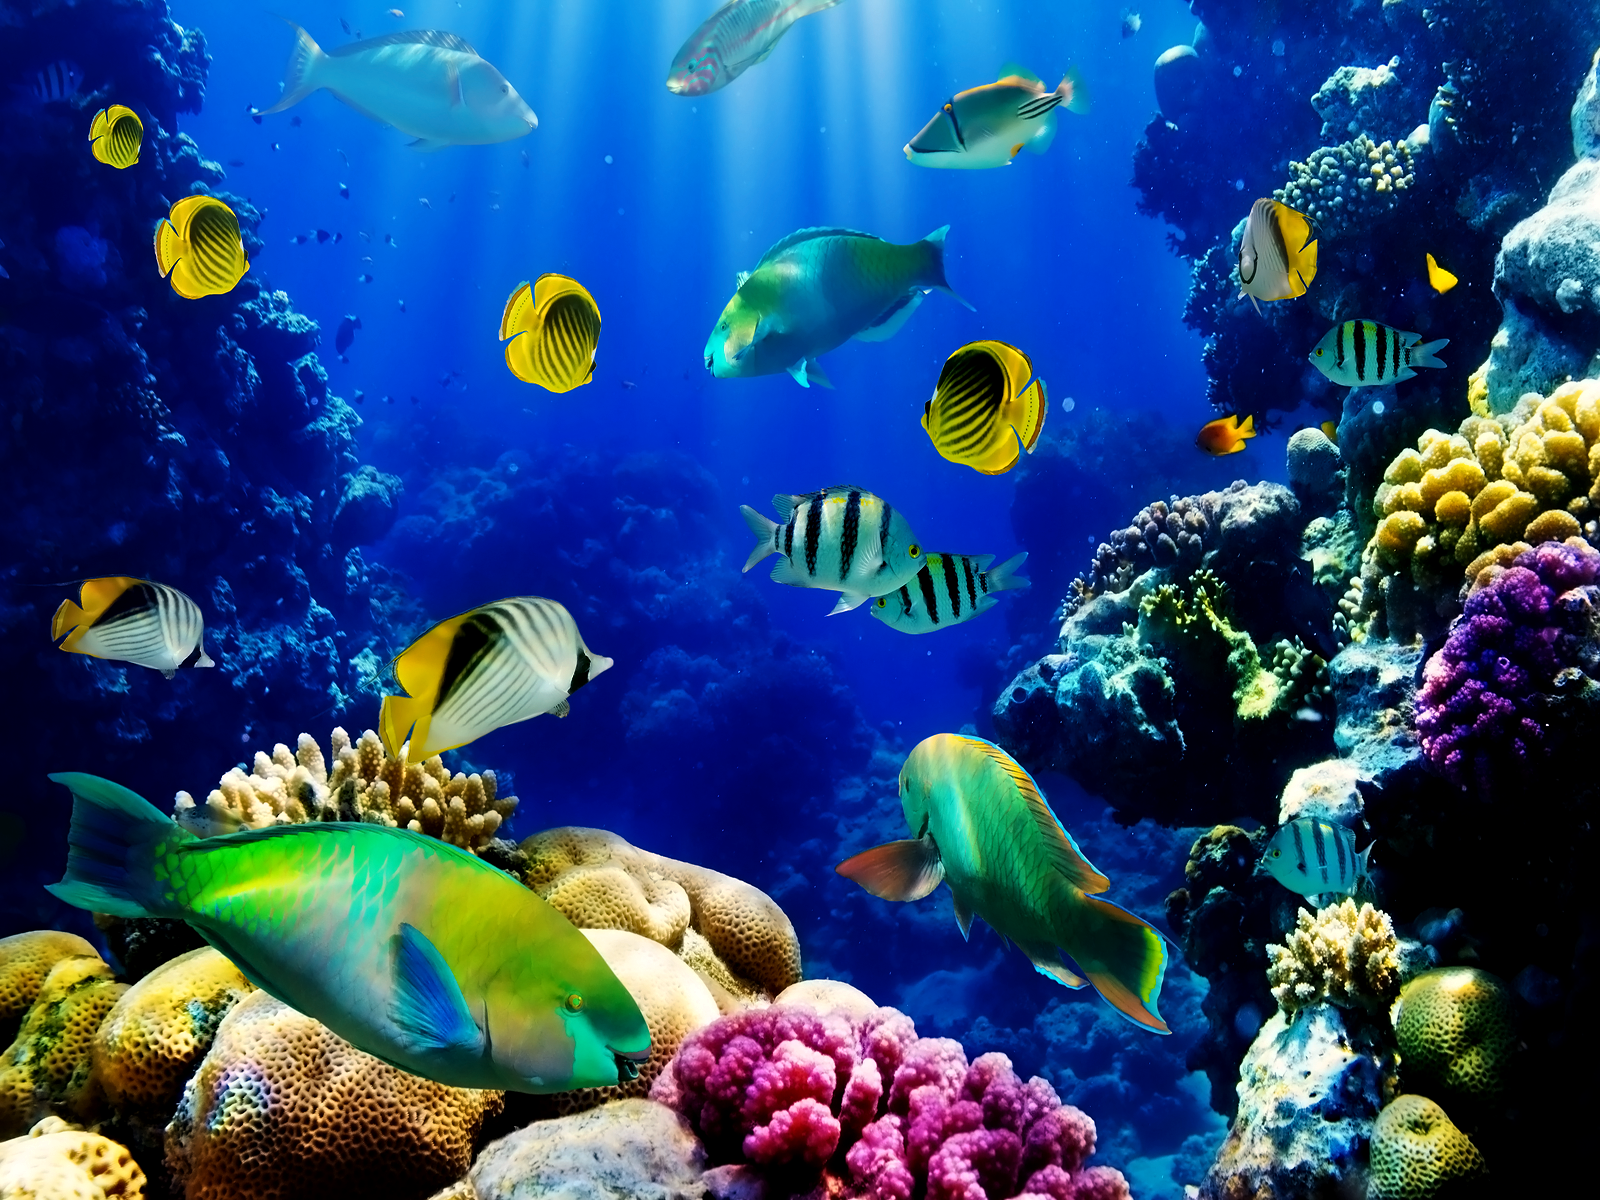 Download image Fish Aquarium Live Wallpaper PC, Android, iPhone and ...